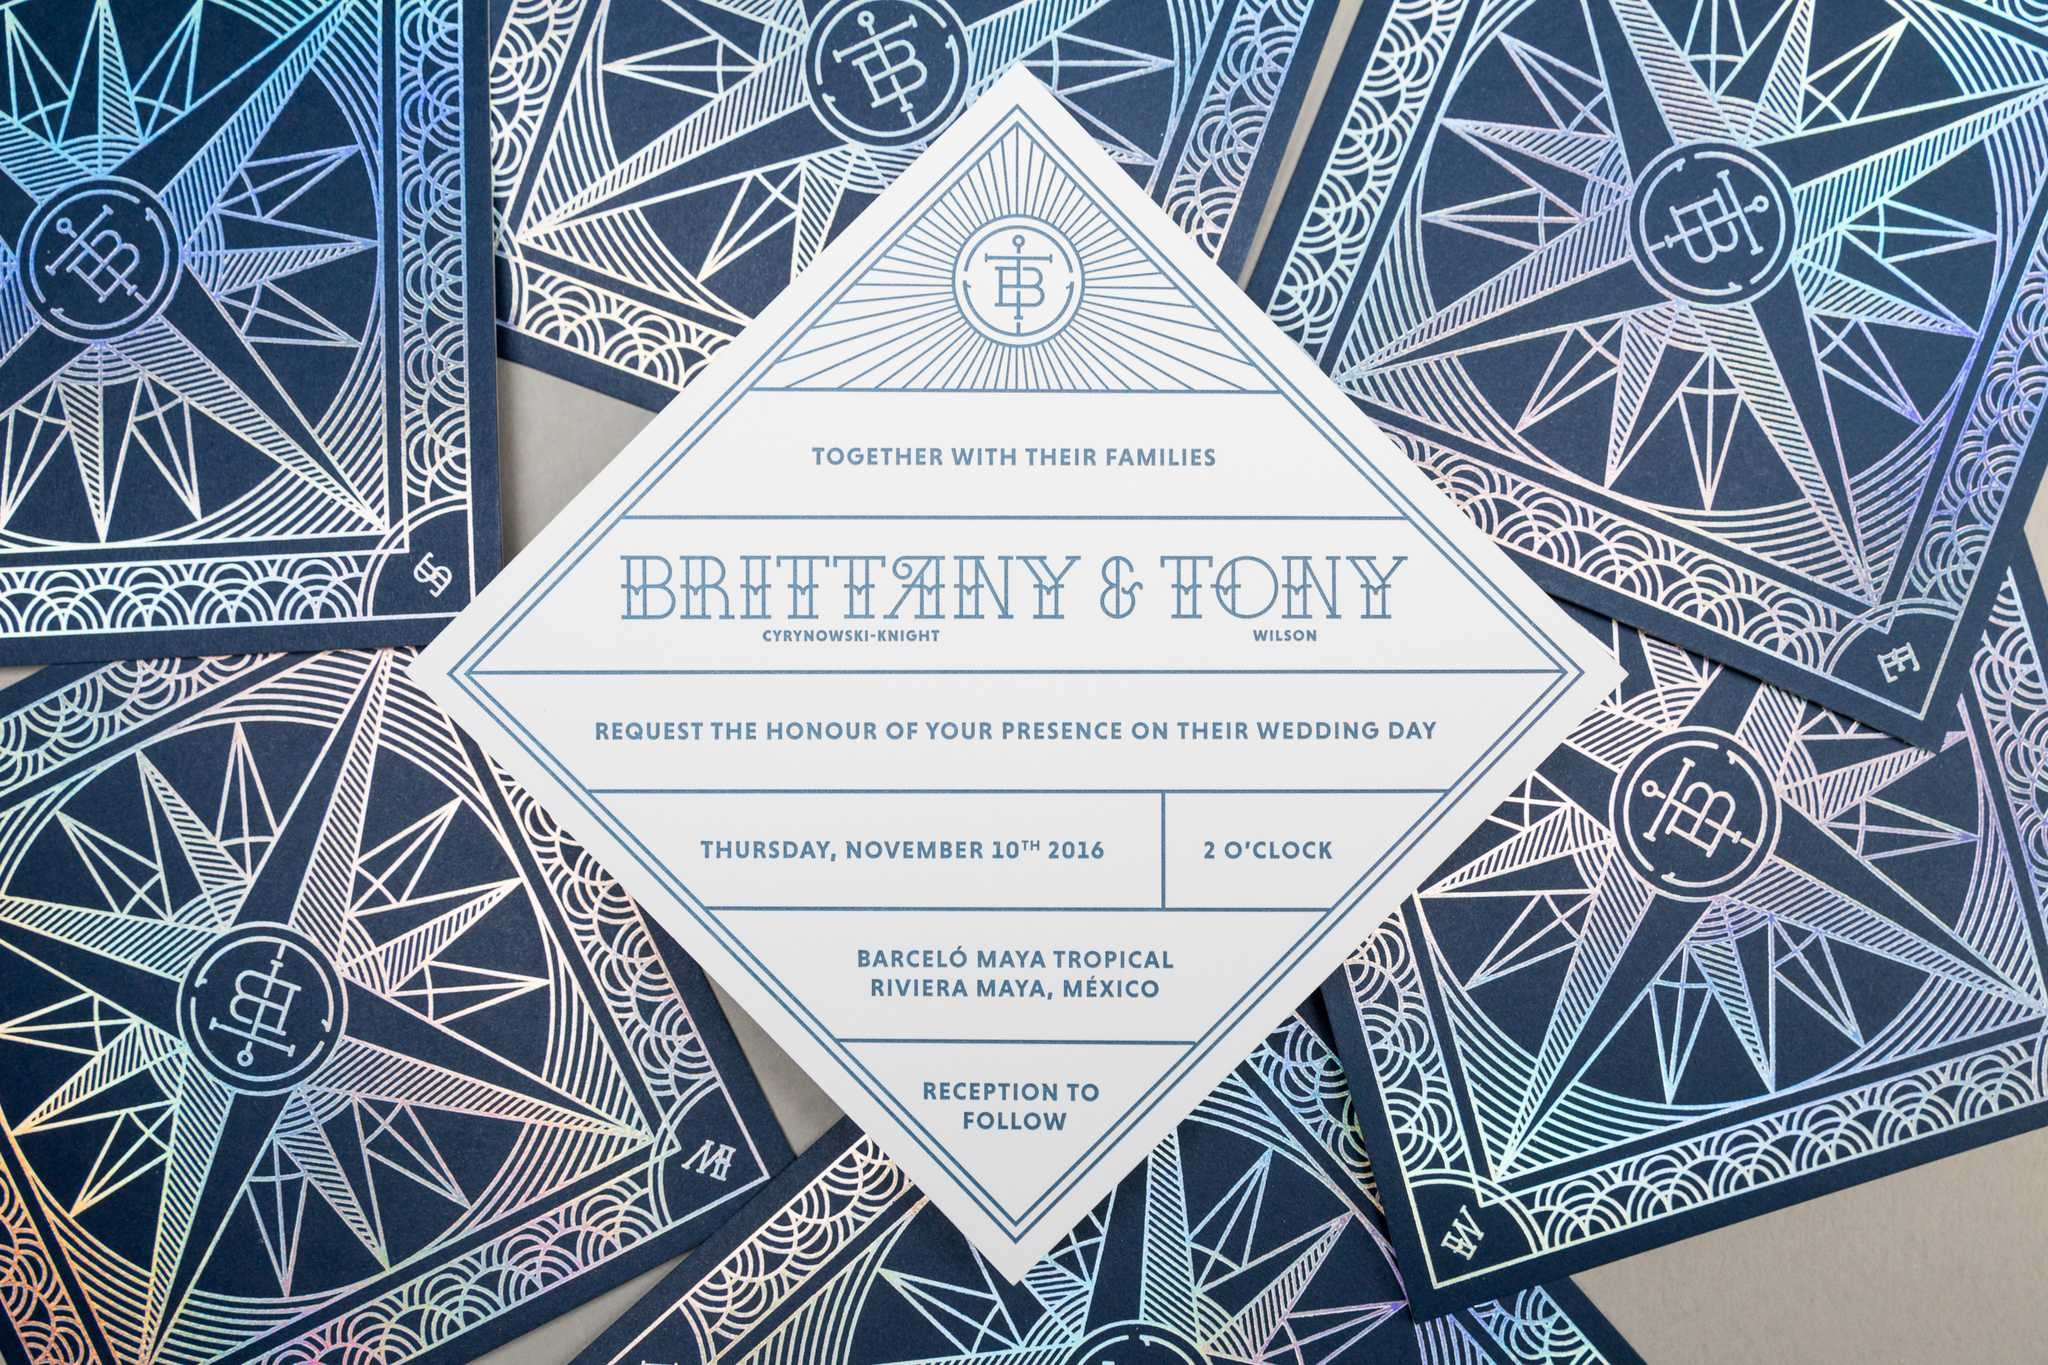 Brittany & Tony Wedding Invitation - PaperSpecs